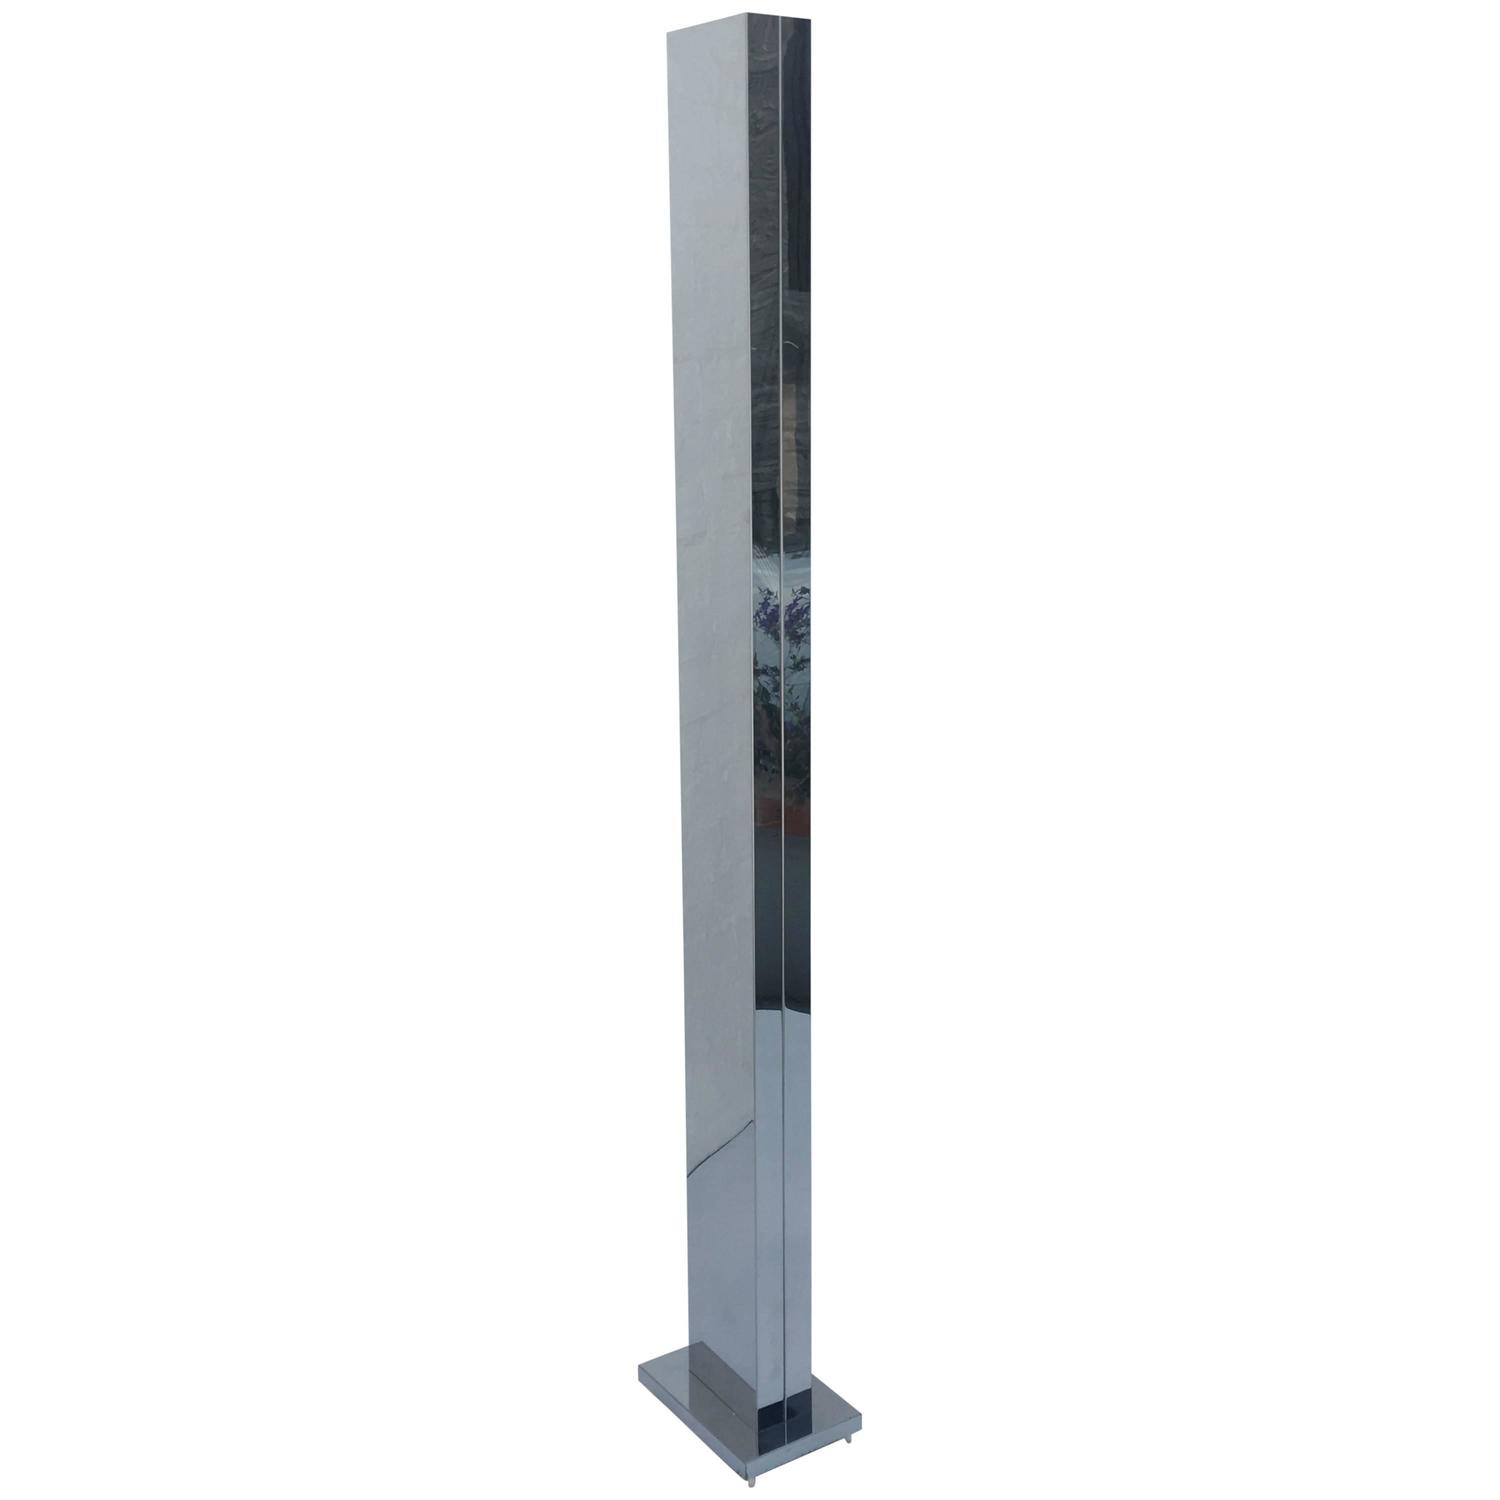 polish stainless steel pylon torchiere floor lamp by casella at. Black Bedroom Furniture Sets. Home Design Ideas